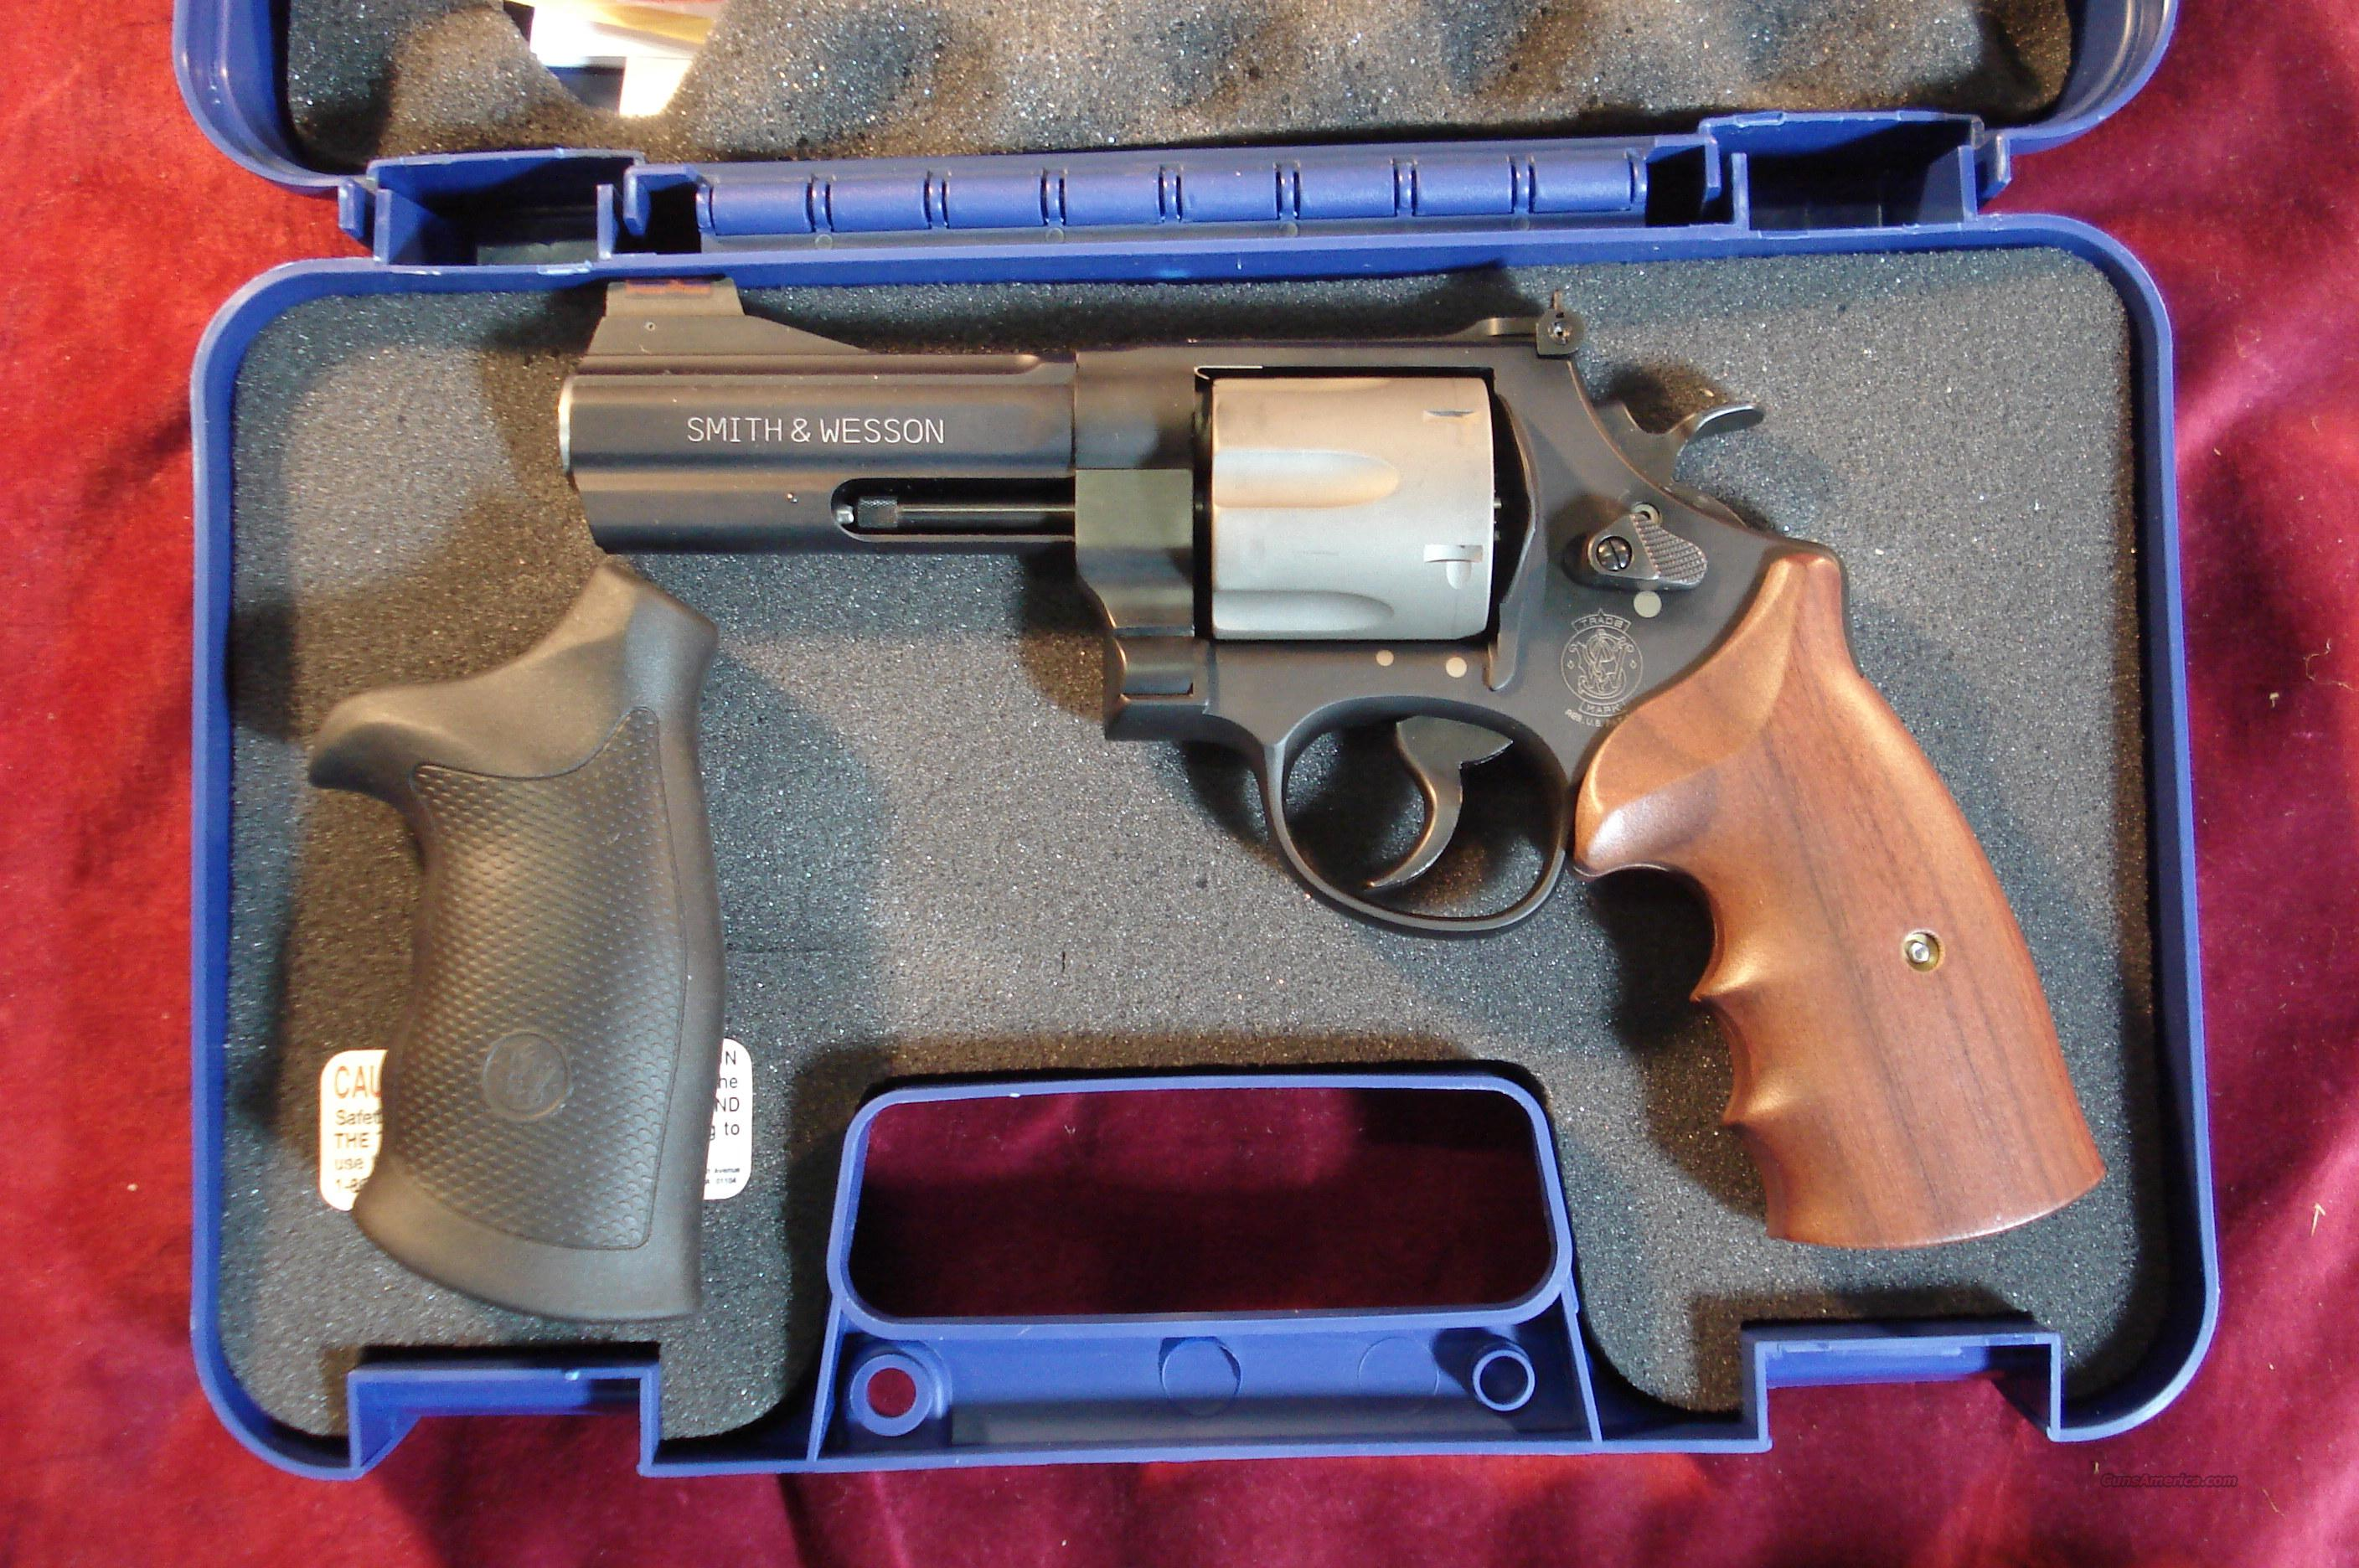 SMITH AND WESSON 329 PD 44 MAG TITANIUM NEW  Guns > Pistols > Smith & Wesson Revolvers > Full Frame Revolver